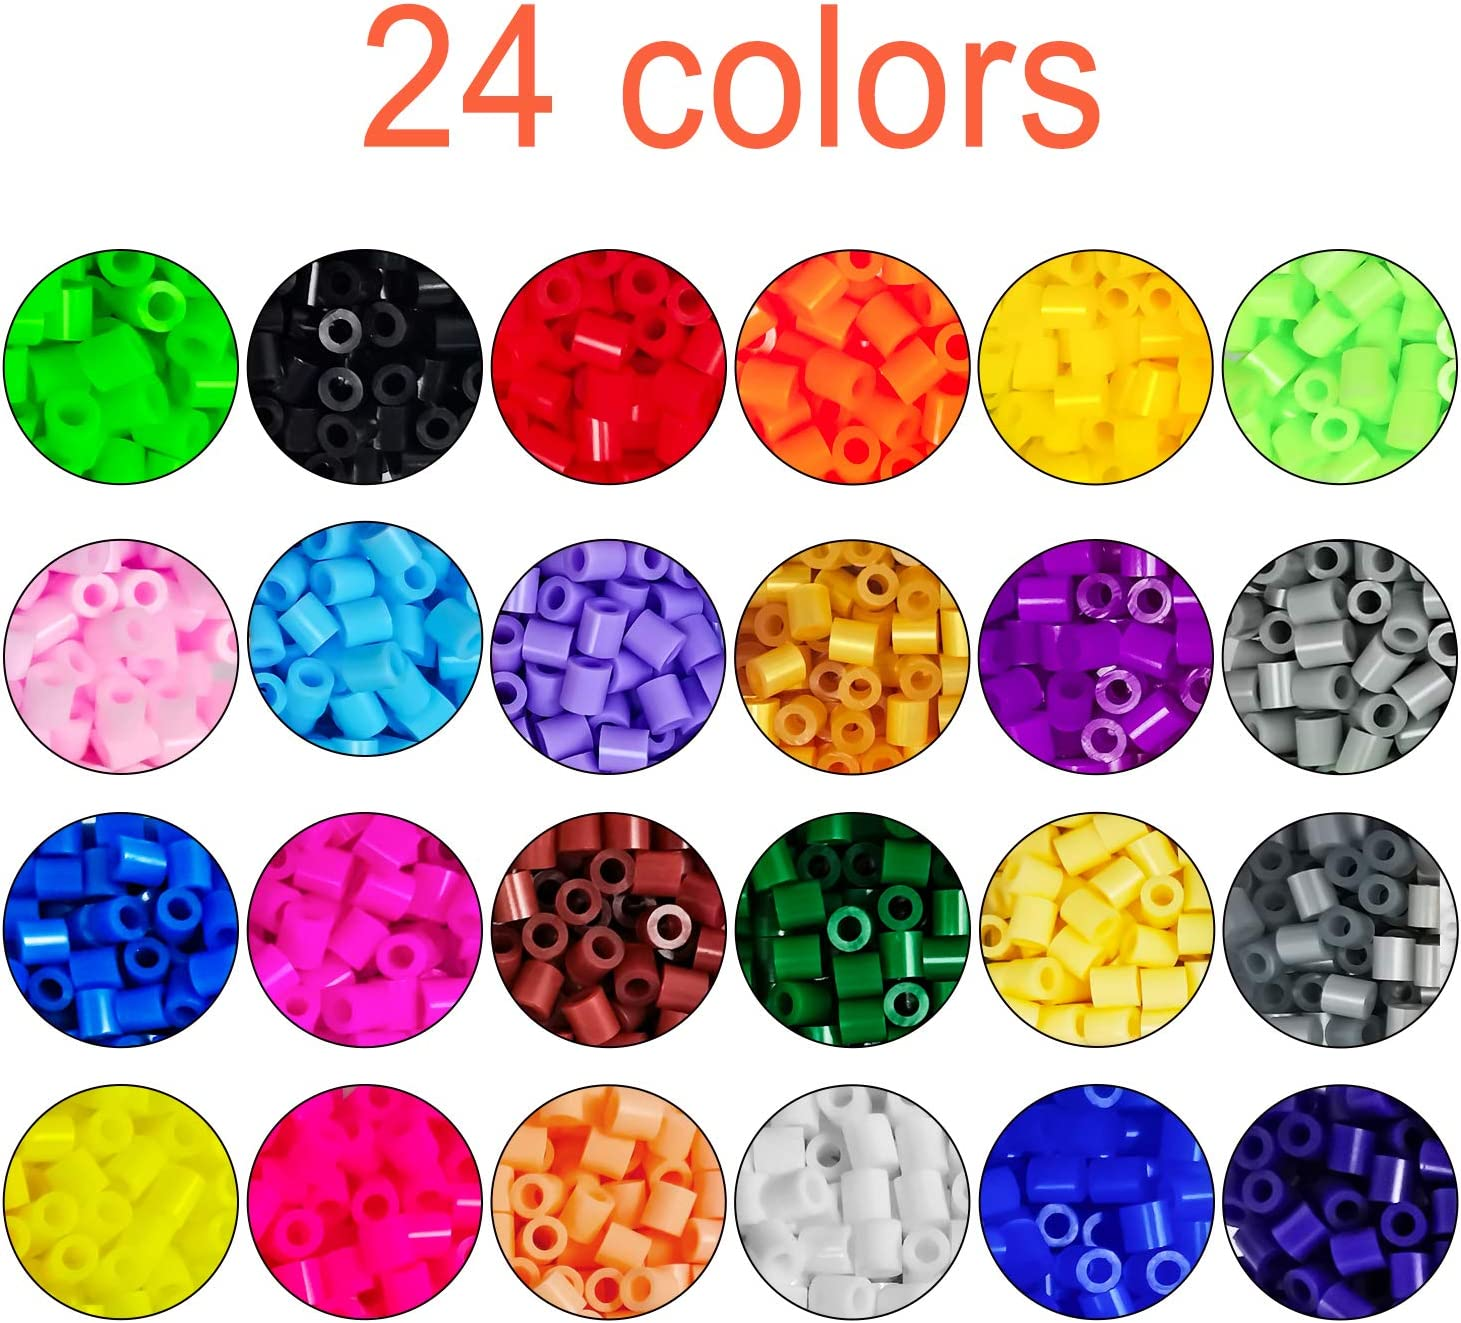 2200 Fuse Beads Set OUNENO 5mm 24 Colors Fuse Beads Kits Including 2 Perler Boards 2 Tweezers 4 Ironing Papers for Perler Beads